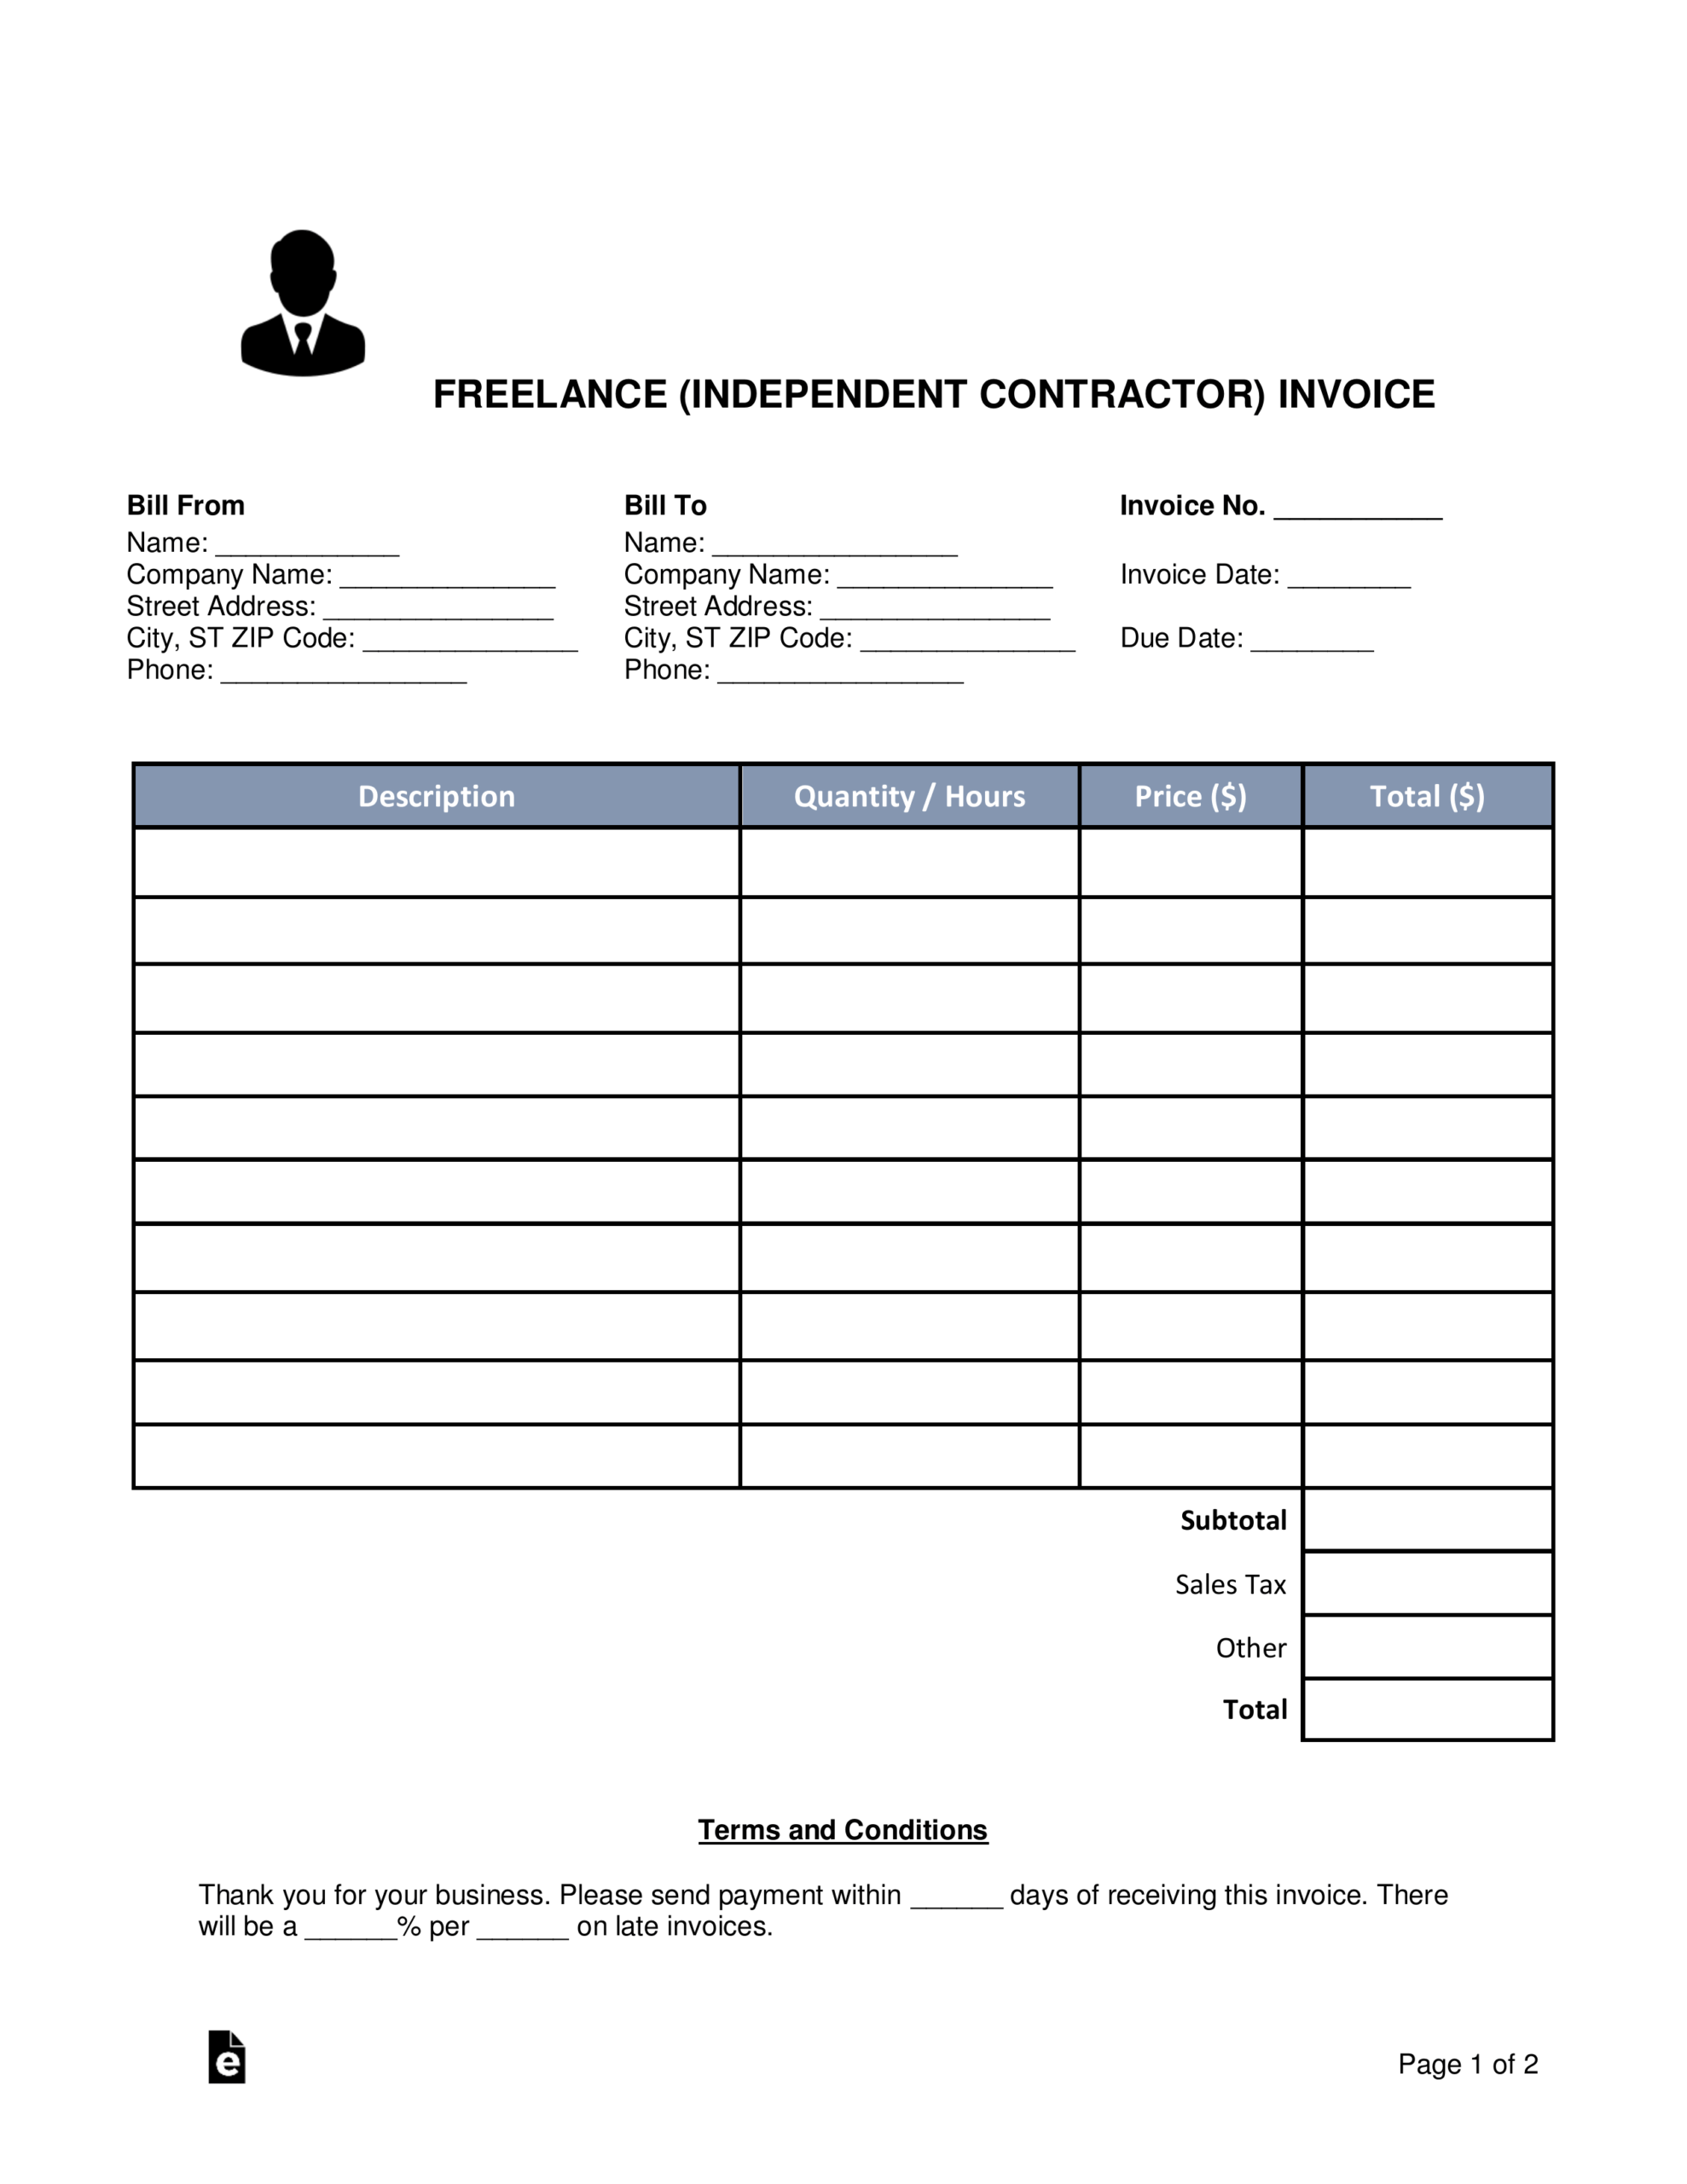 Free Freelance (Independent Contractor) Invoice Template Throughout 1099 Invoice Template